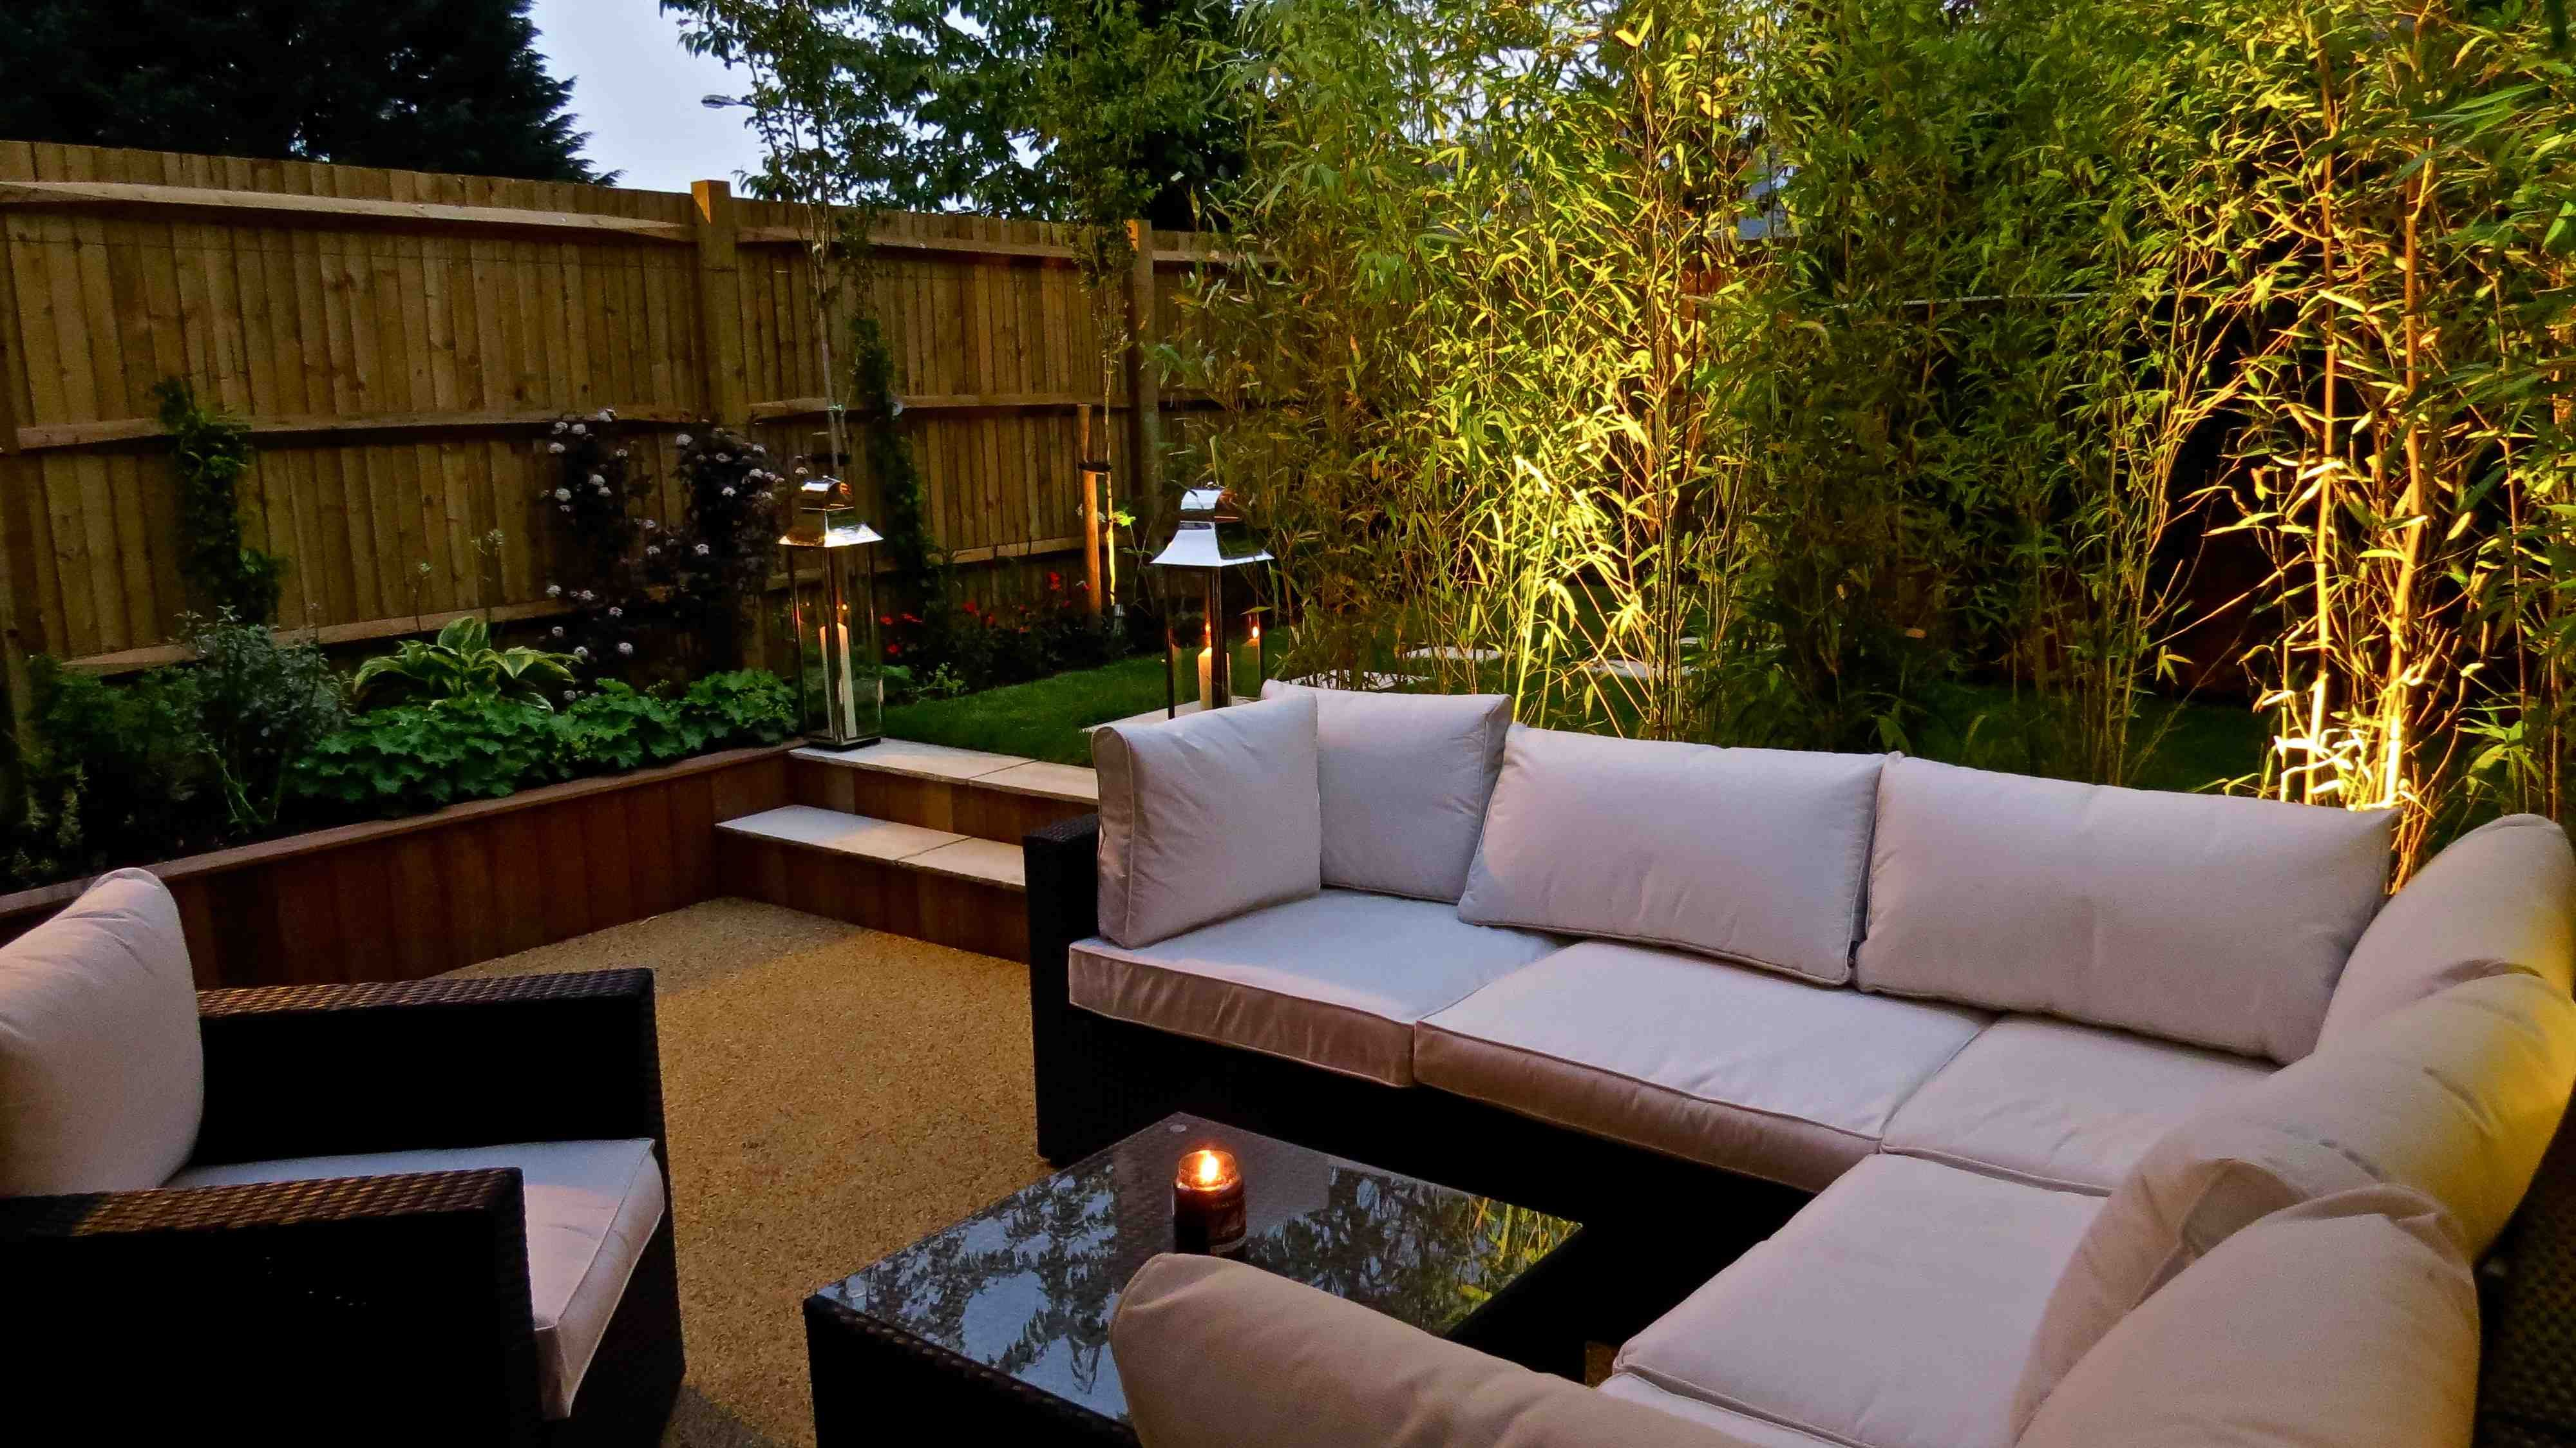 The Most Awesome Along With Interesting Garden Design Jobs Kent Bit Terrace Gardennorth Londonlighting